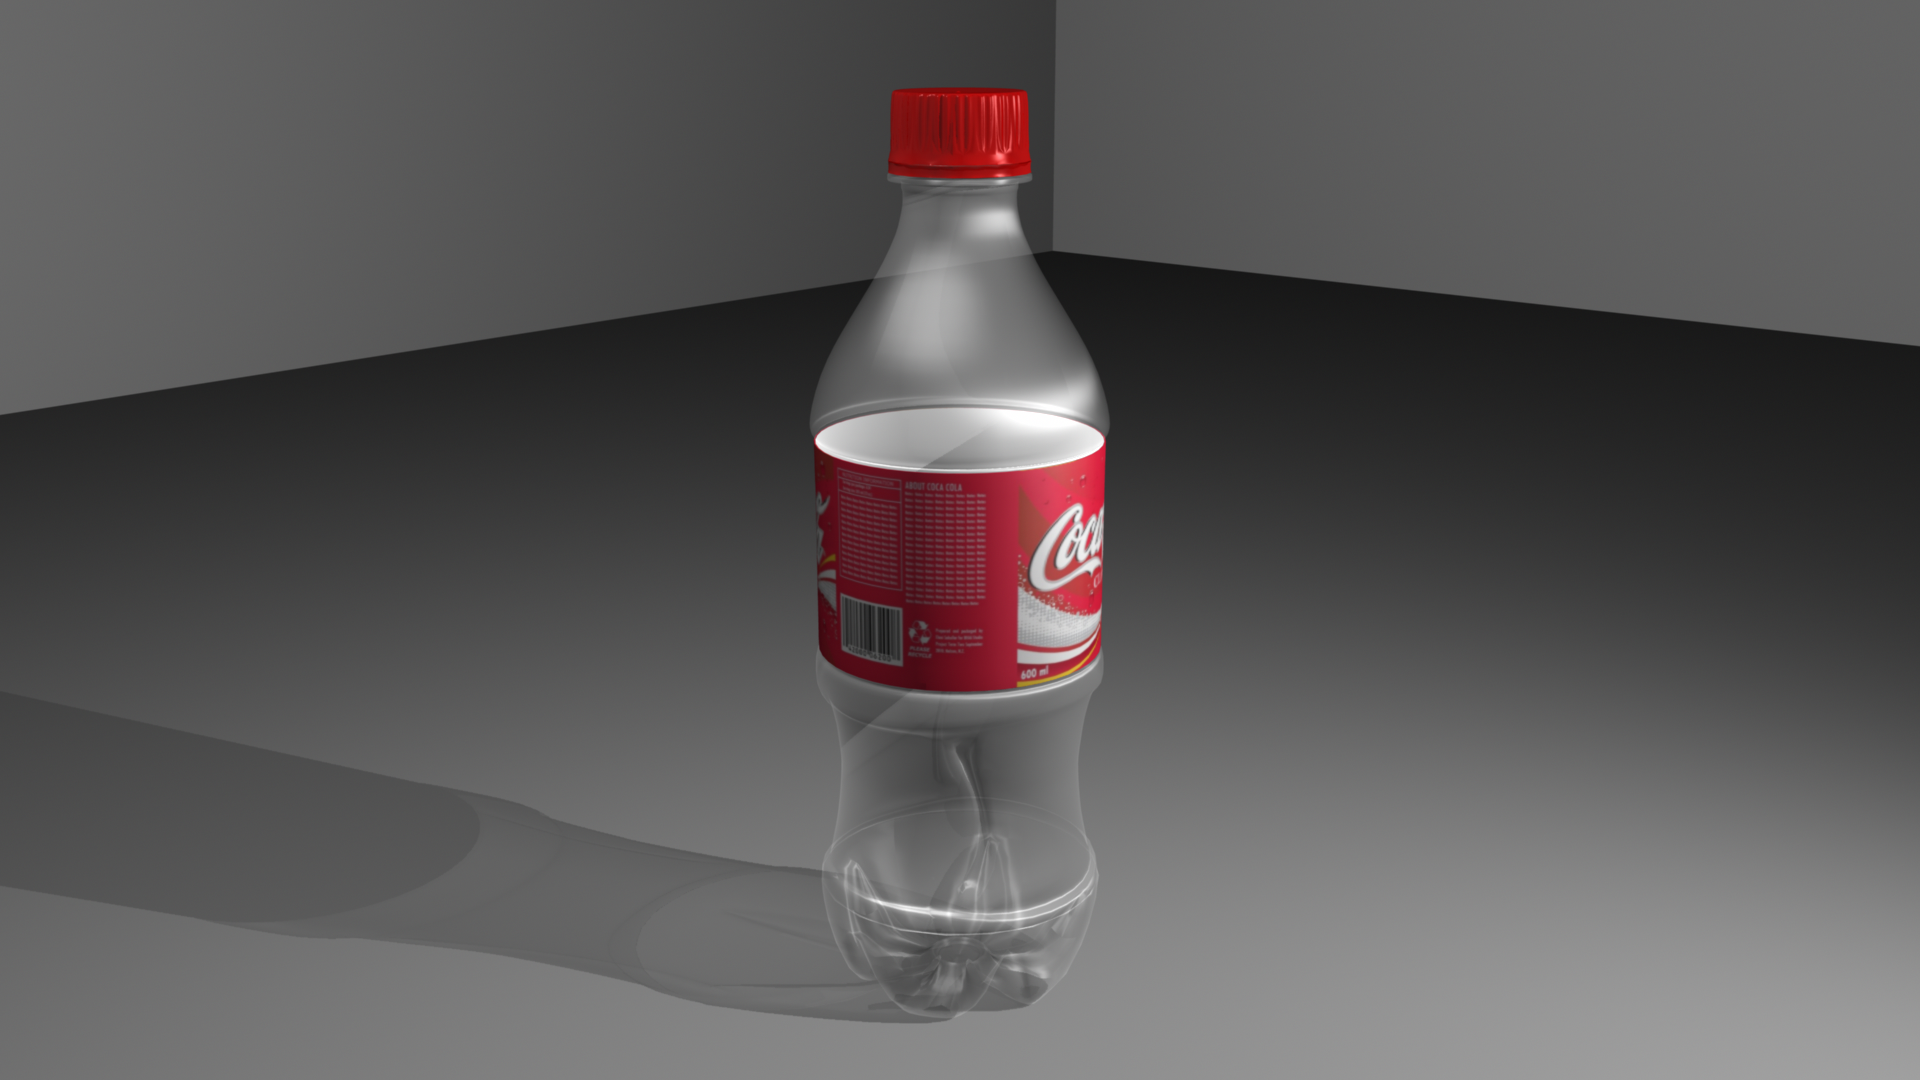 Coke Bottle Png Plastic Bottle of Coke